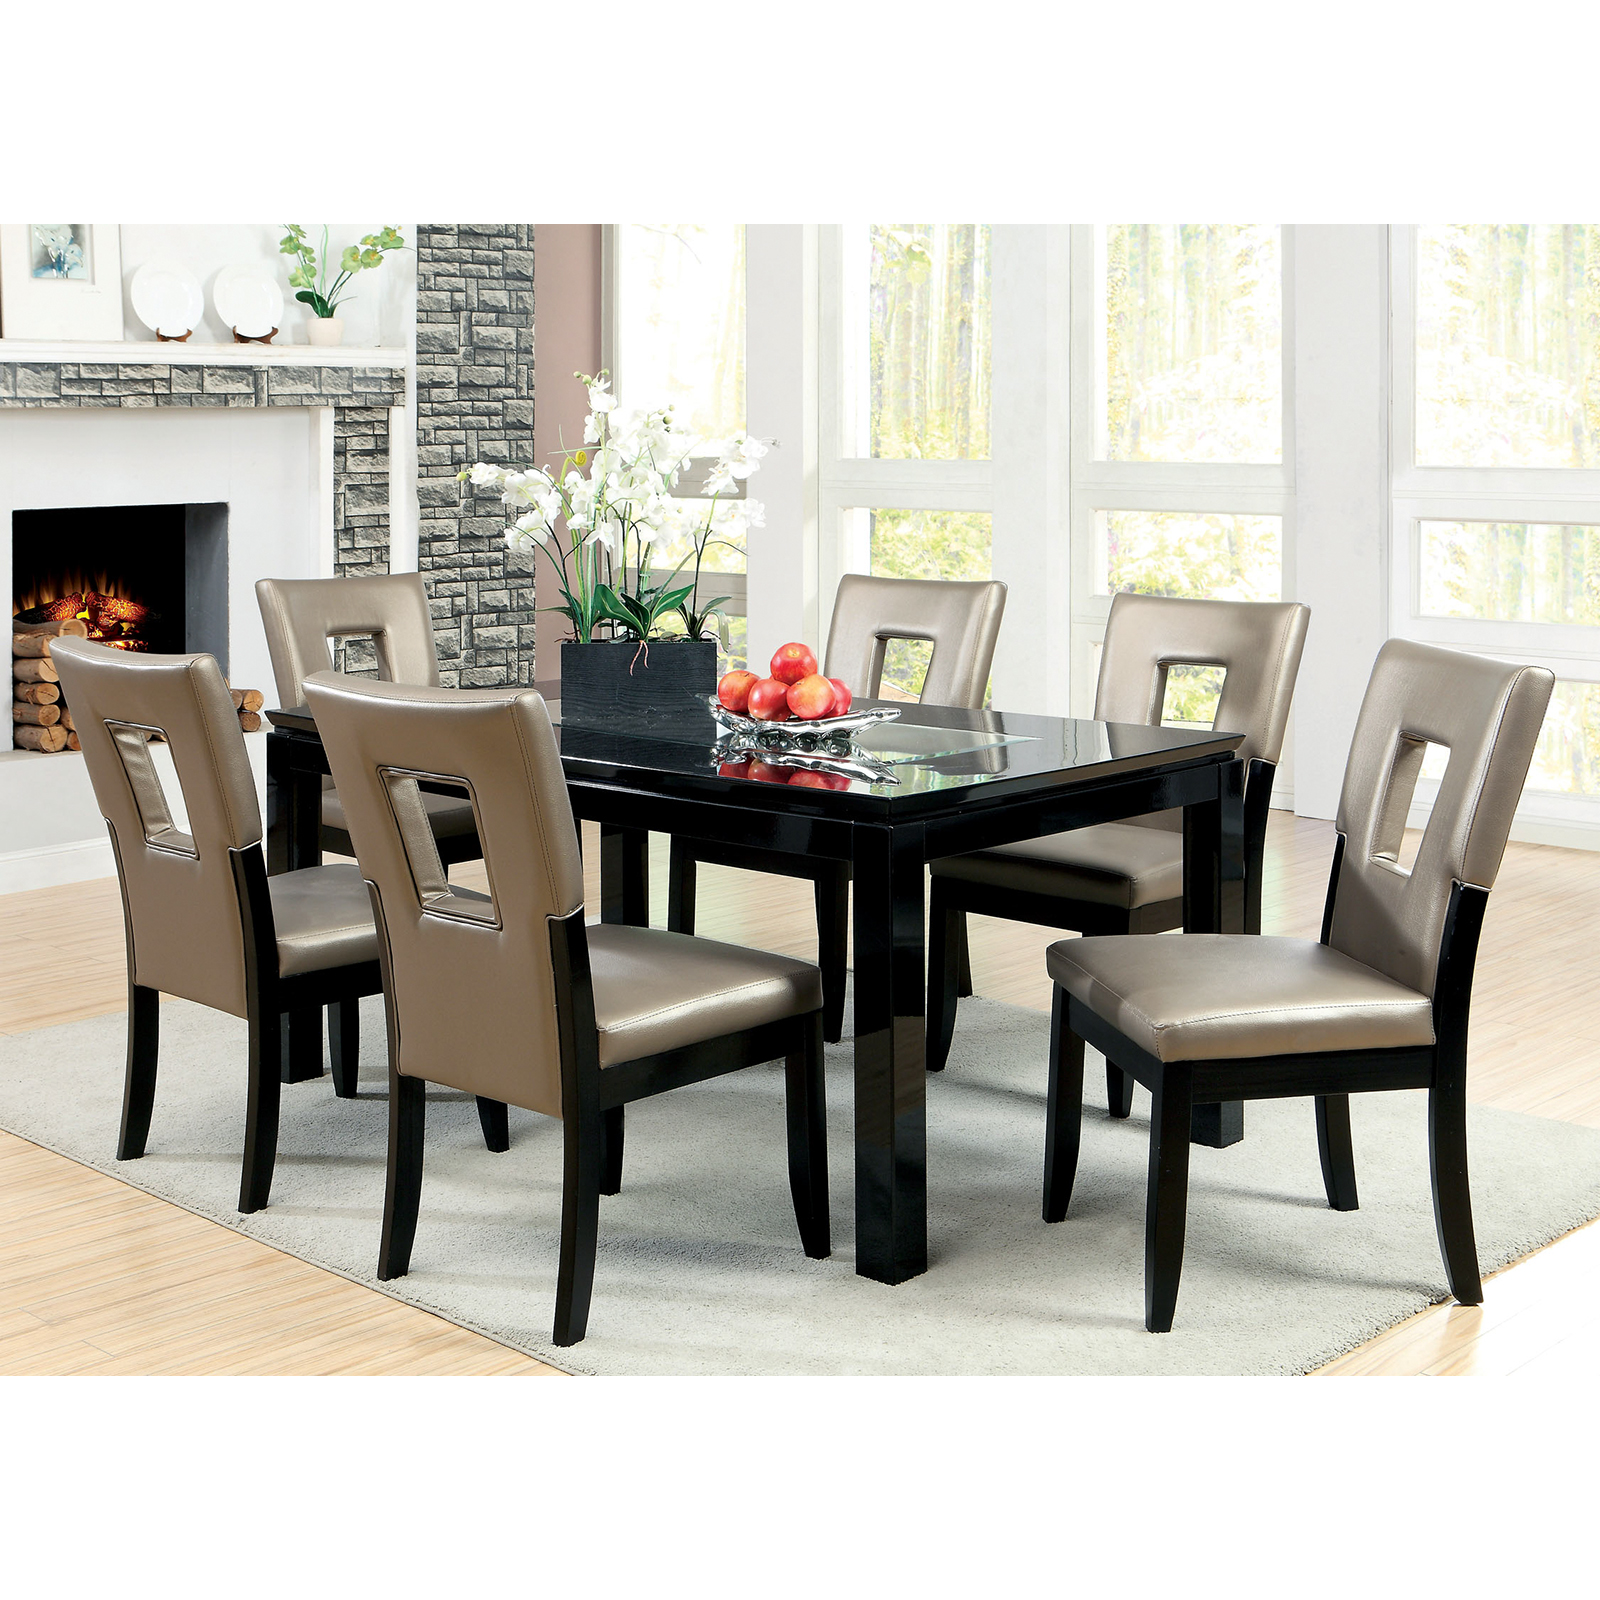 7 piece black dining room set. Furniture of America Vanderbilte 7 Piece Wood with Glass Inlay Dining Set  Black Hayneedle